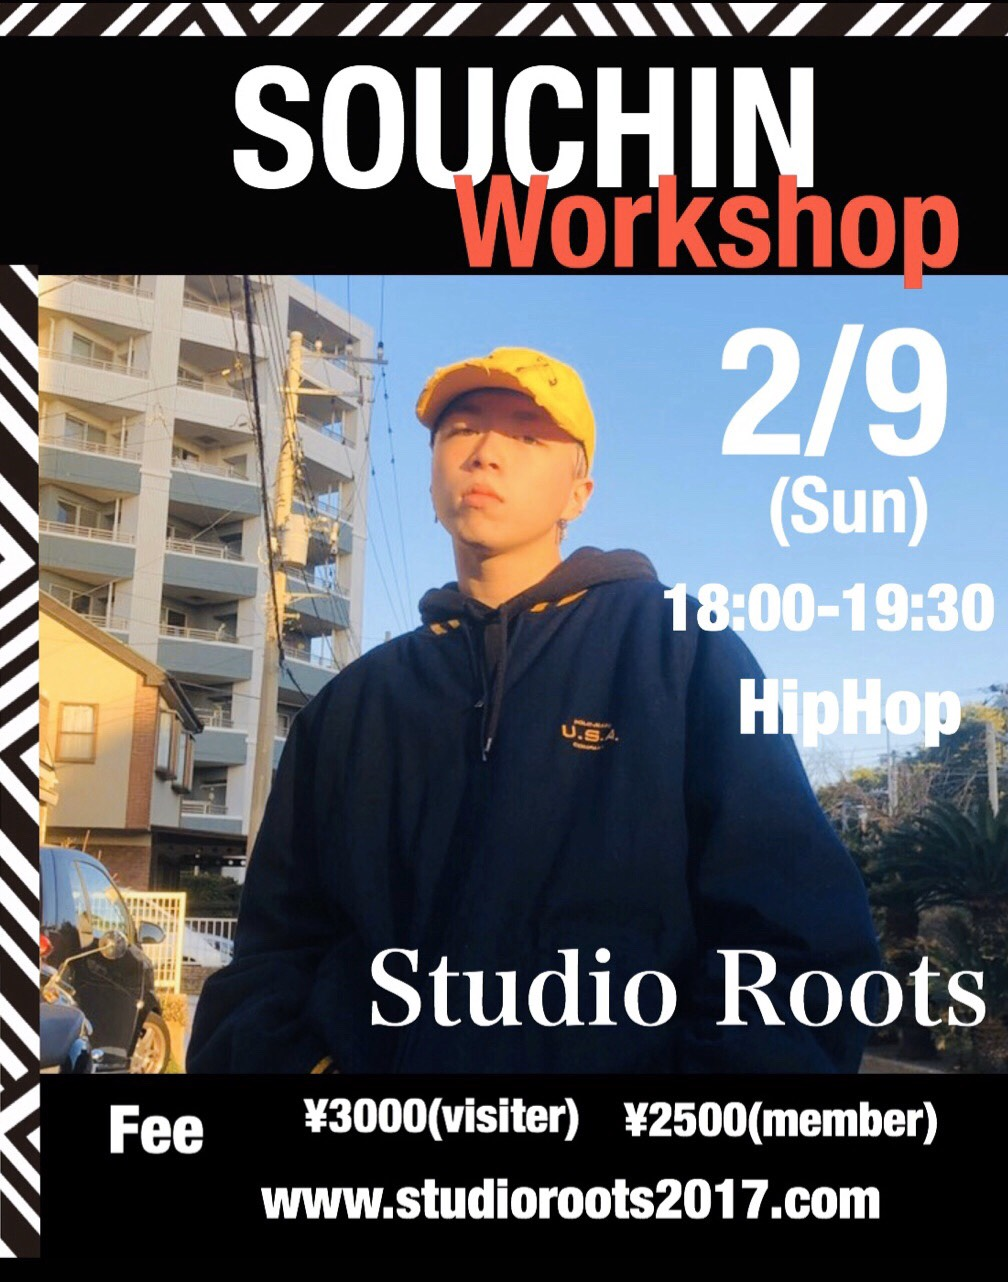 Souchin Workshop 開催決定!